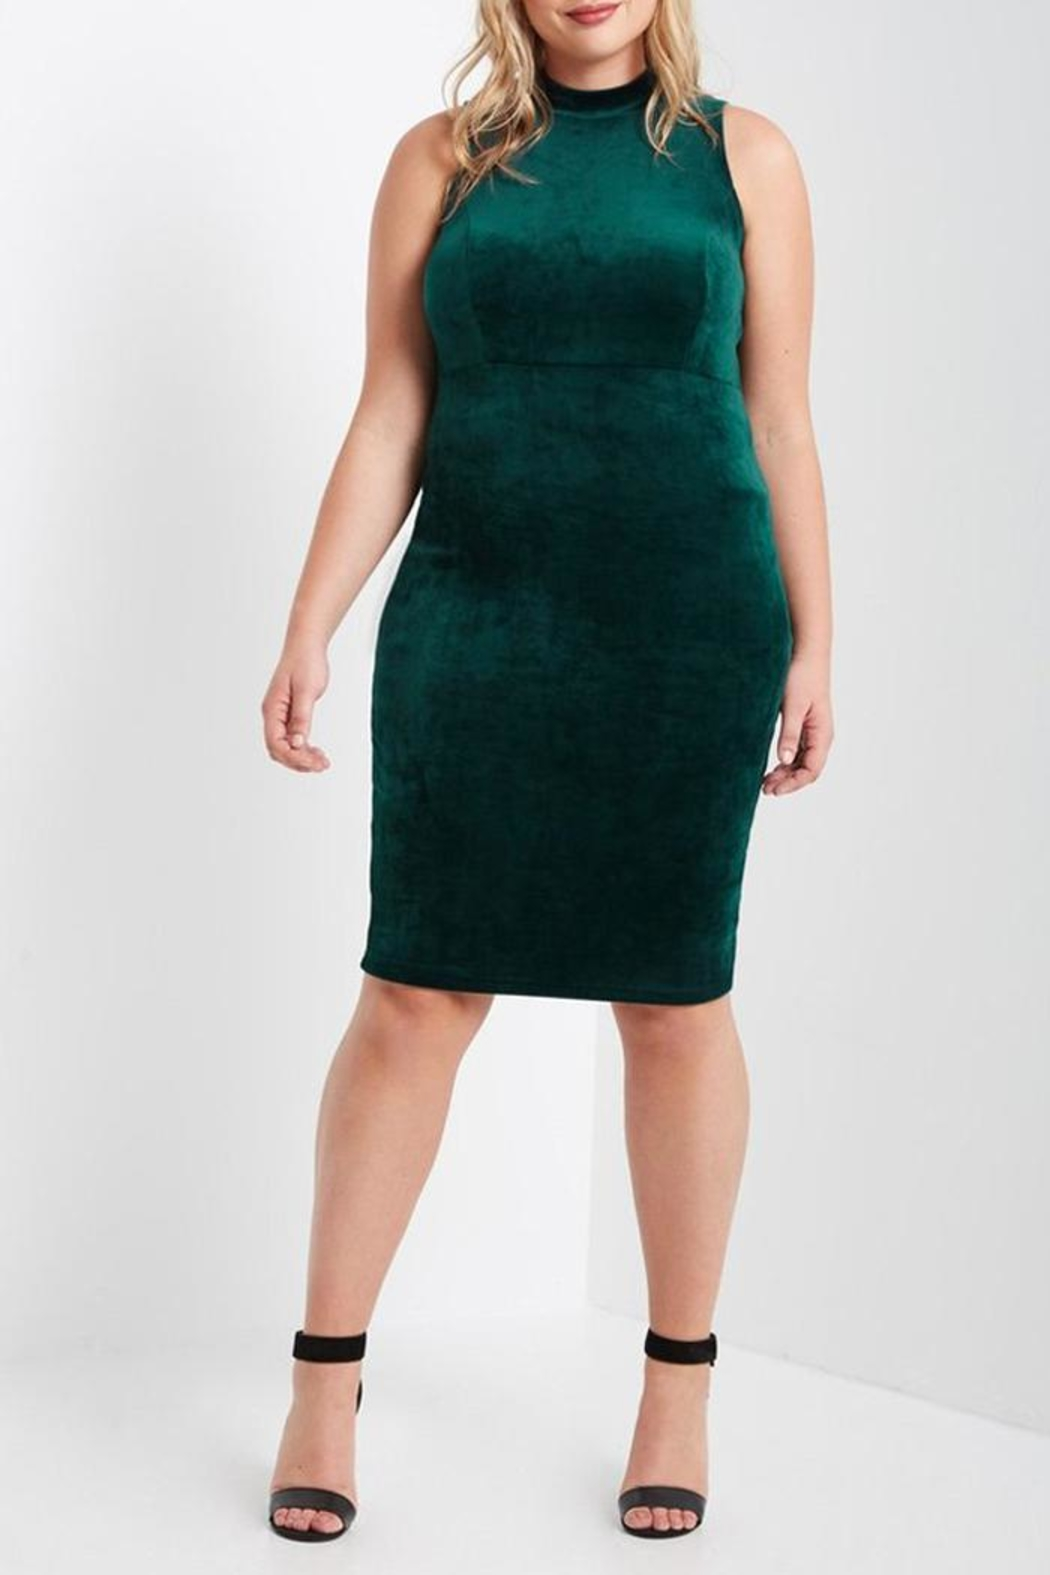 MaiTai Green Velvet Dress - Main Image